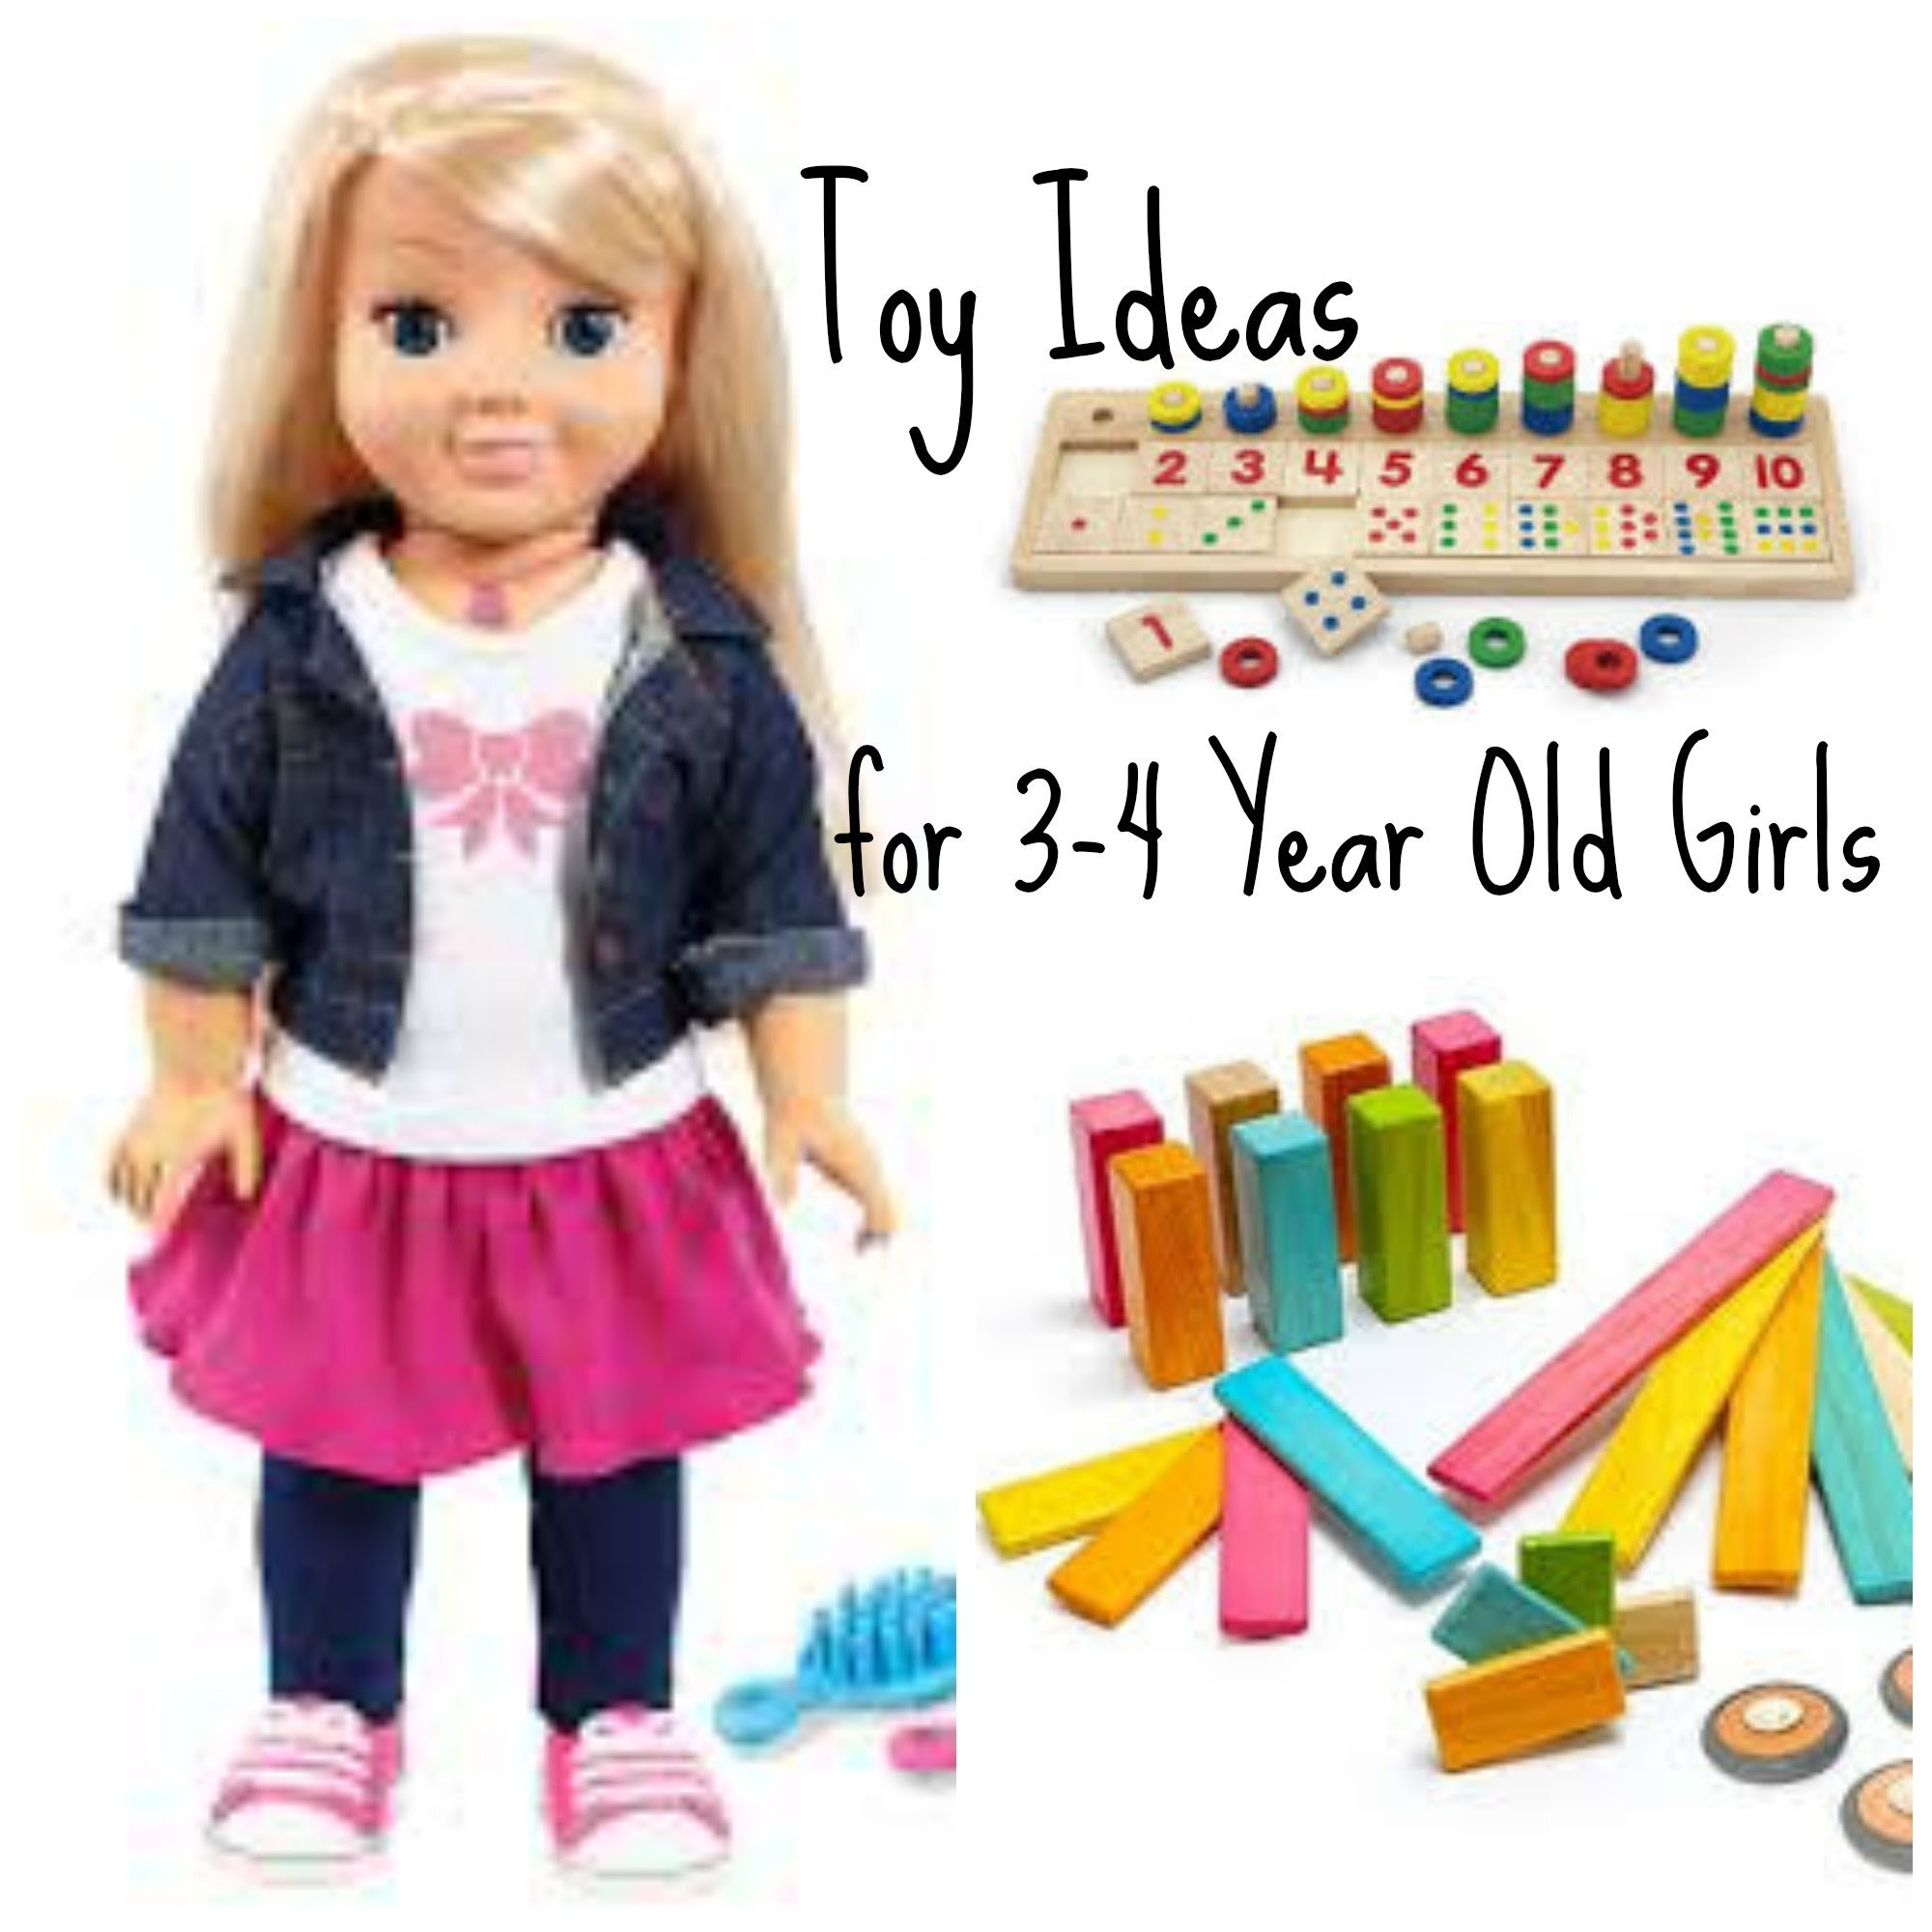 10 Famous Gift Ideas For 4 Yr Old Girl toys 3 4 years old girl all i want for christmas collab youtube 2 2020